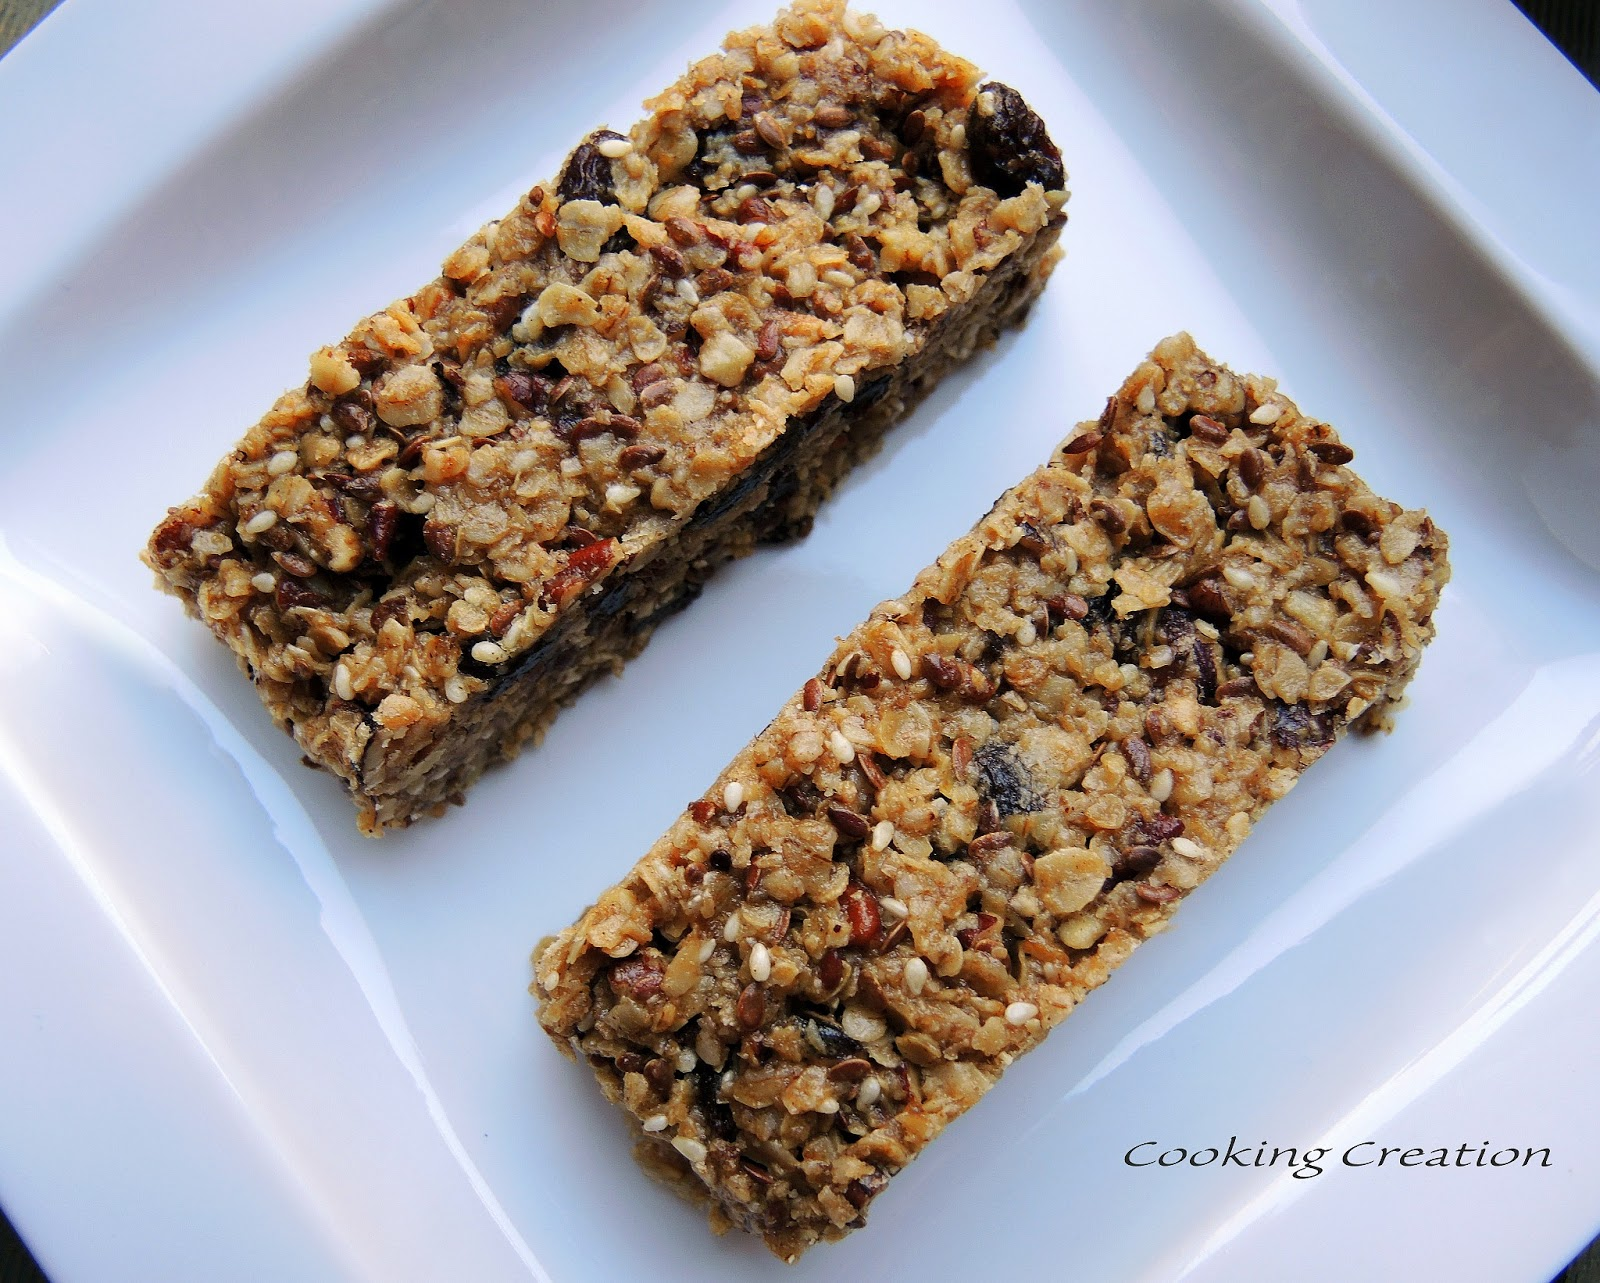 Cooking Creation: Homemade Chewy Granola Bars